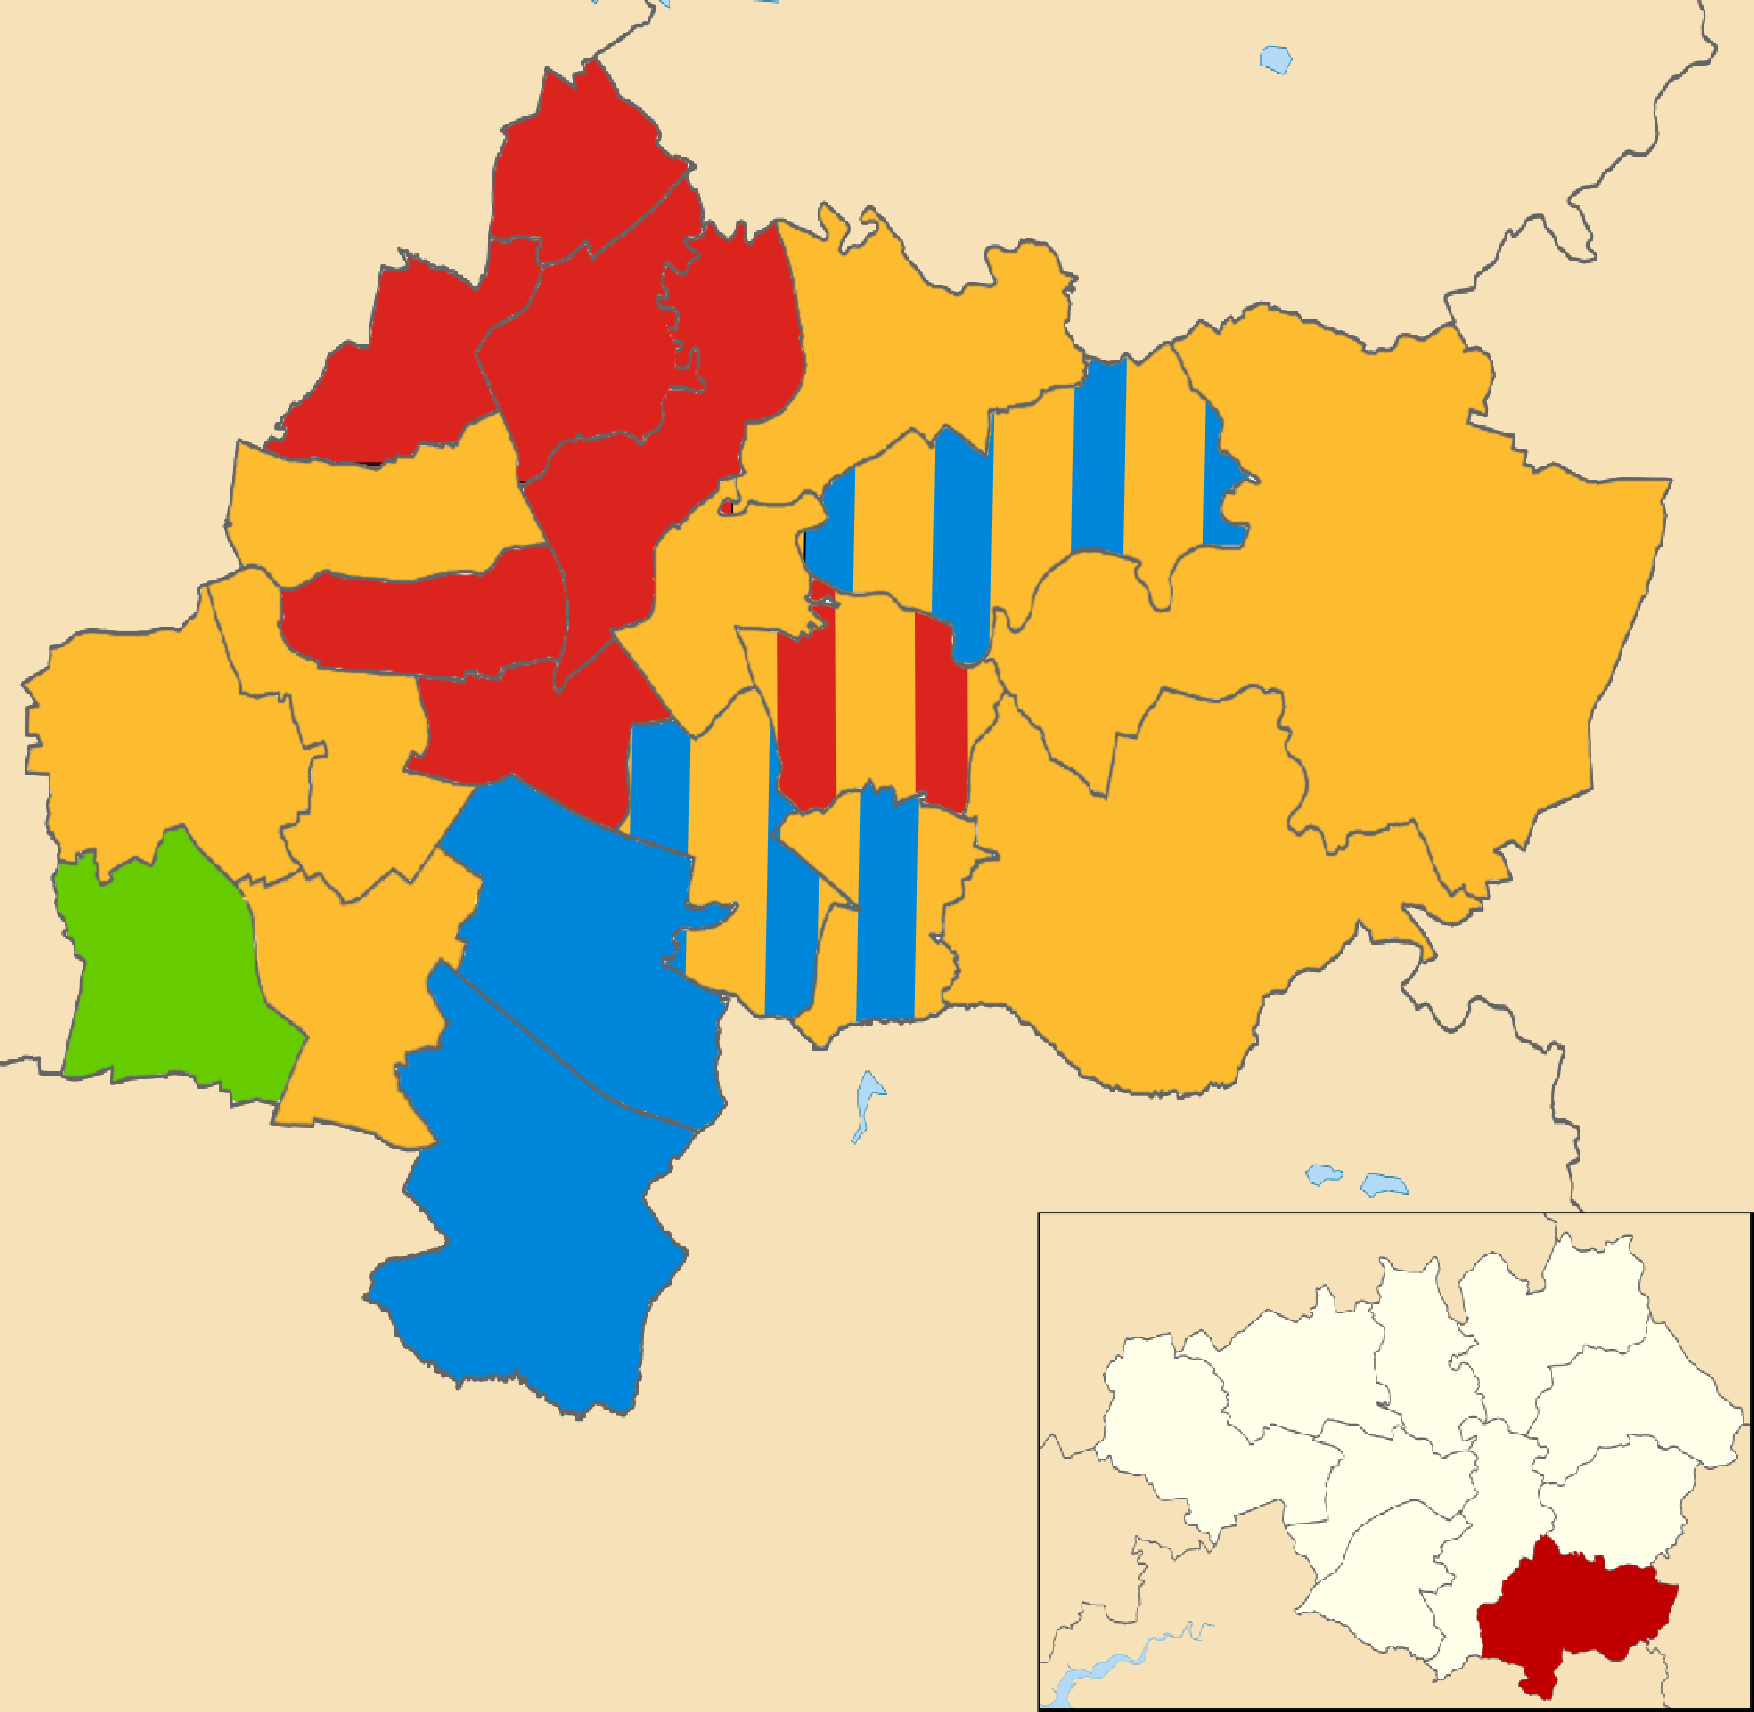 FileStockport Council Composition 2014 Mappng Wikimedia Commons